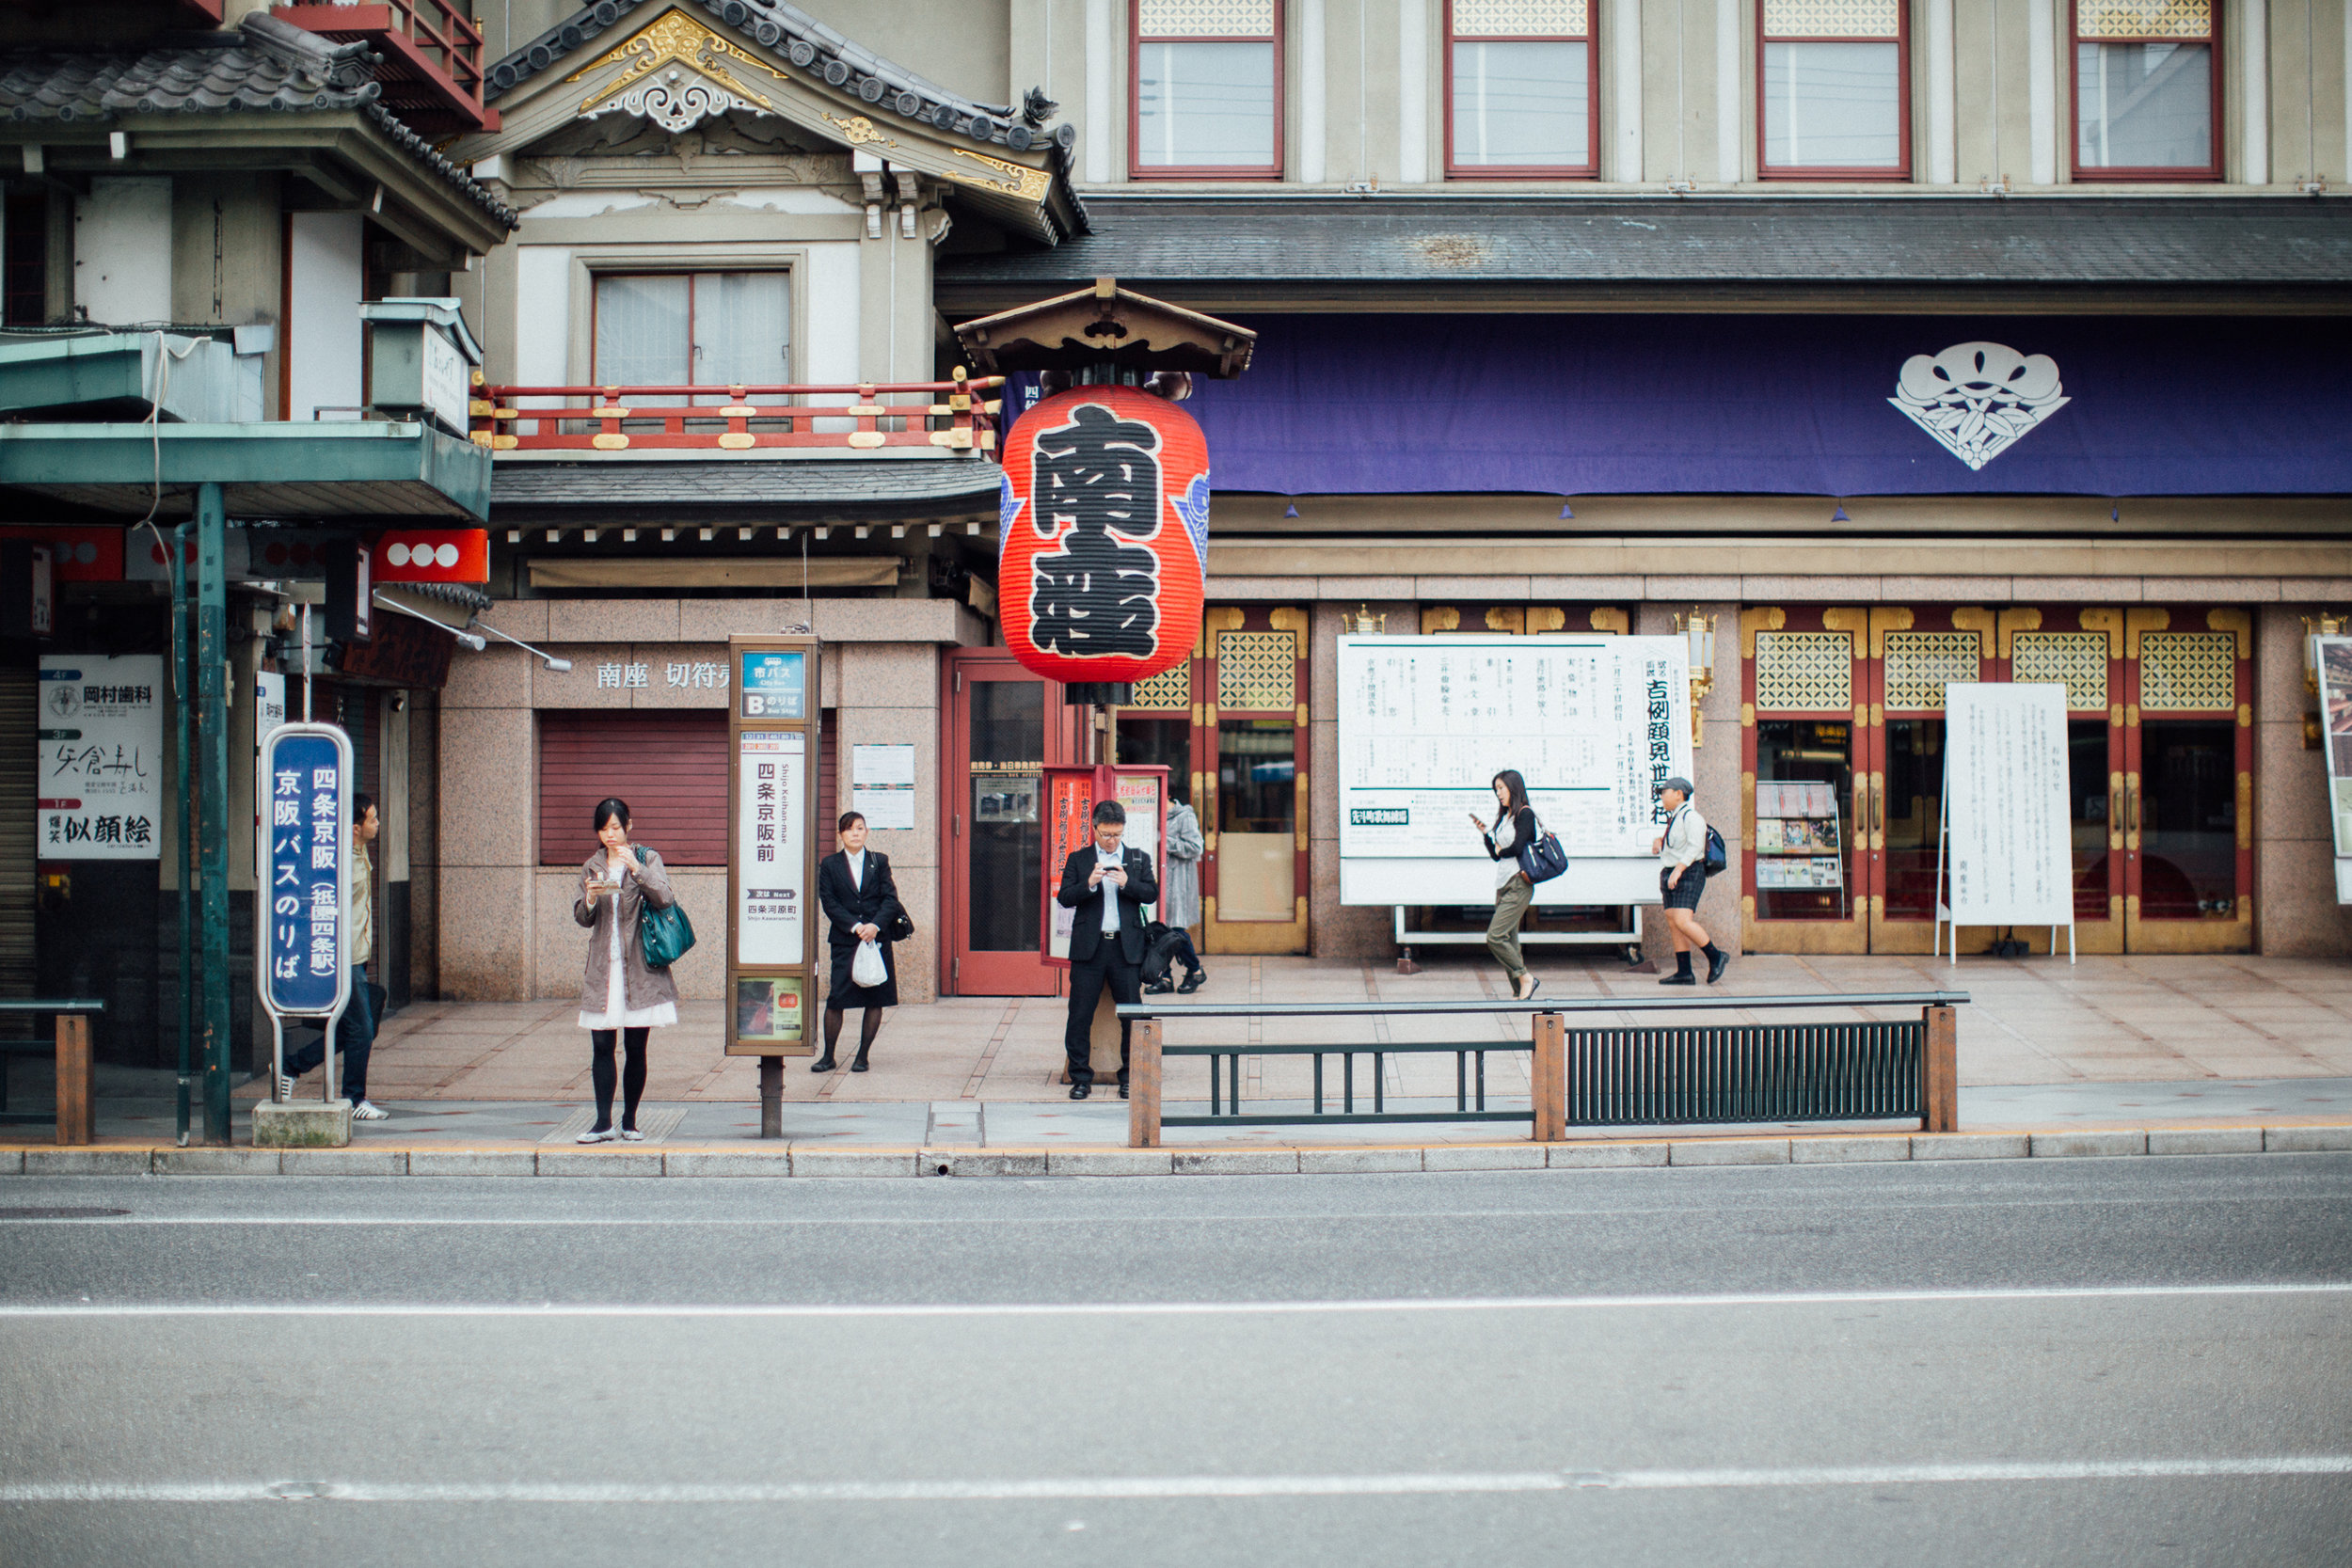 A bus stop outside the Minamiza Kabuki Theatre on the east side of the Kamo river. East of the river is the Higashiyama area of Kyoto which is where many of the shrines and traditional buildings are found (but obviously not limited to).